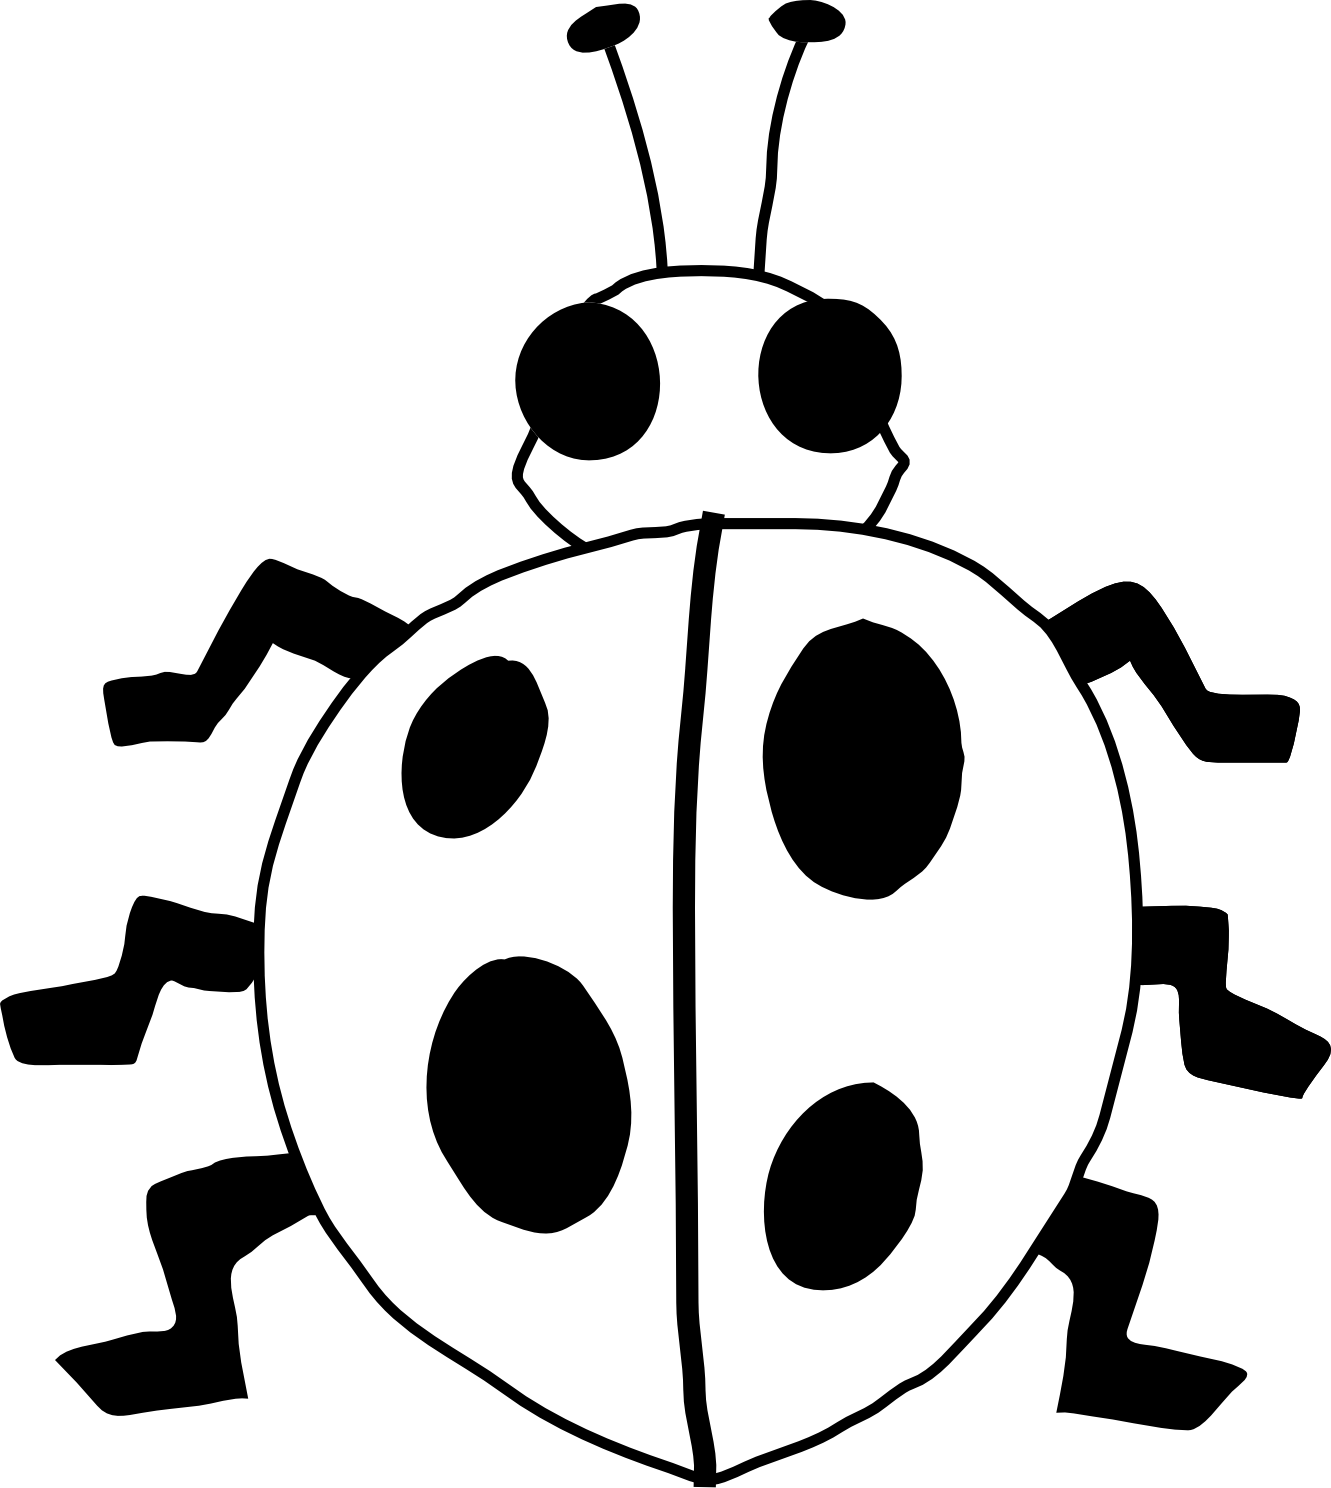 Bug black and white. Worm clipart insect